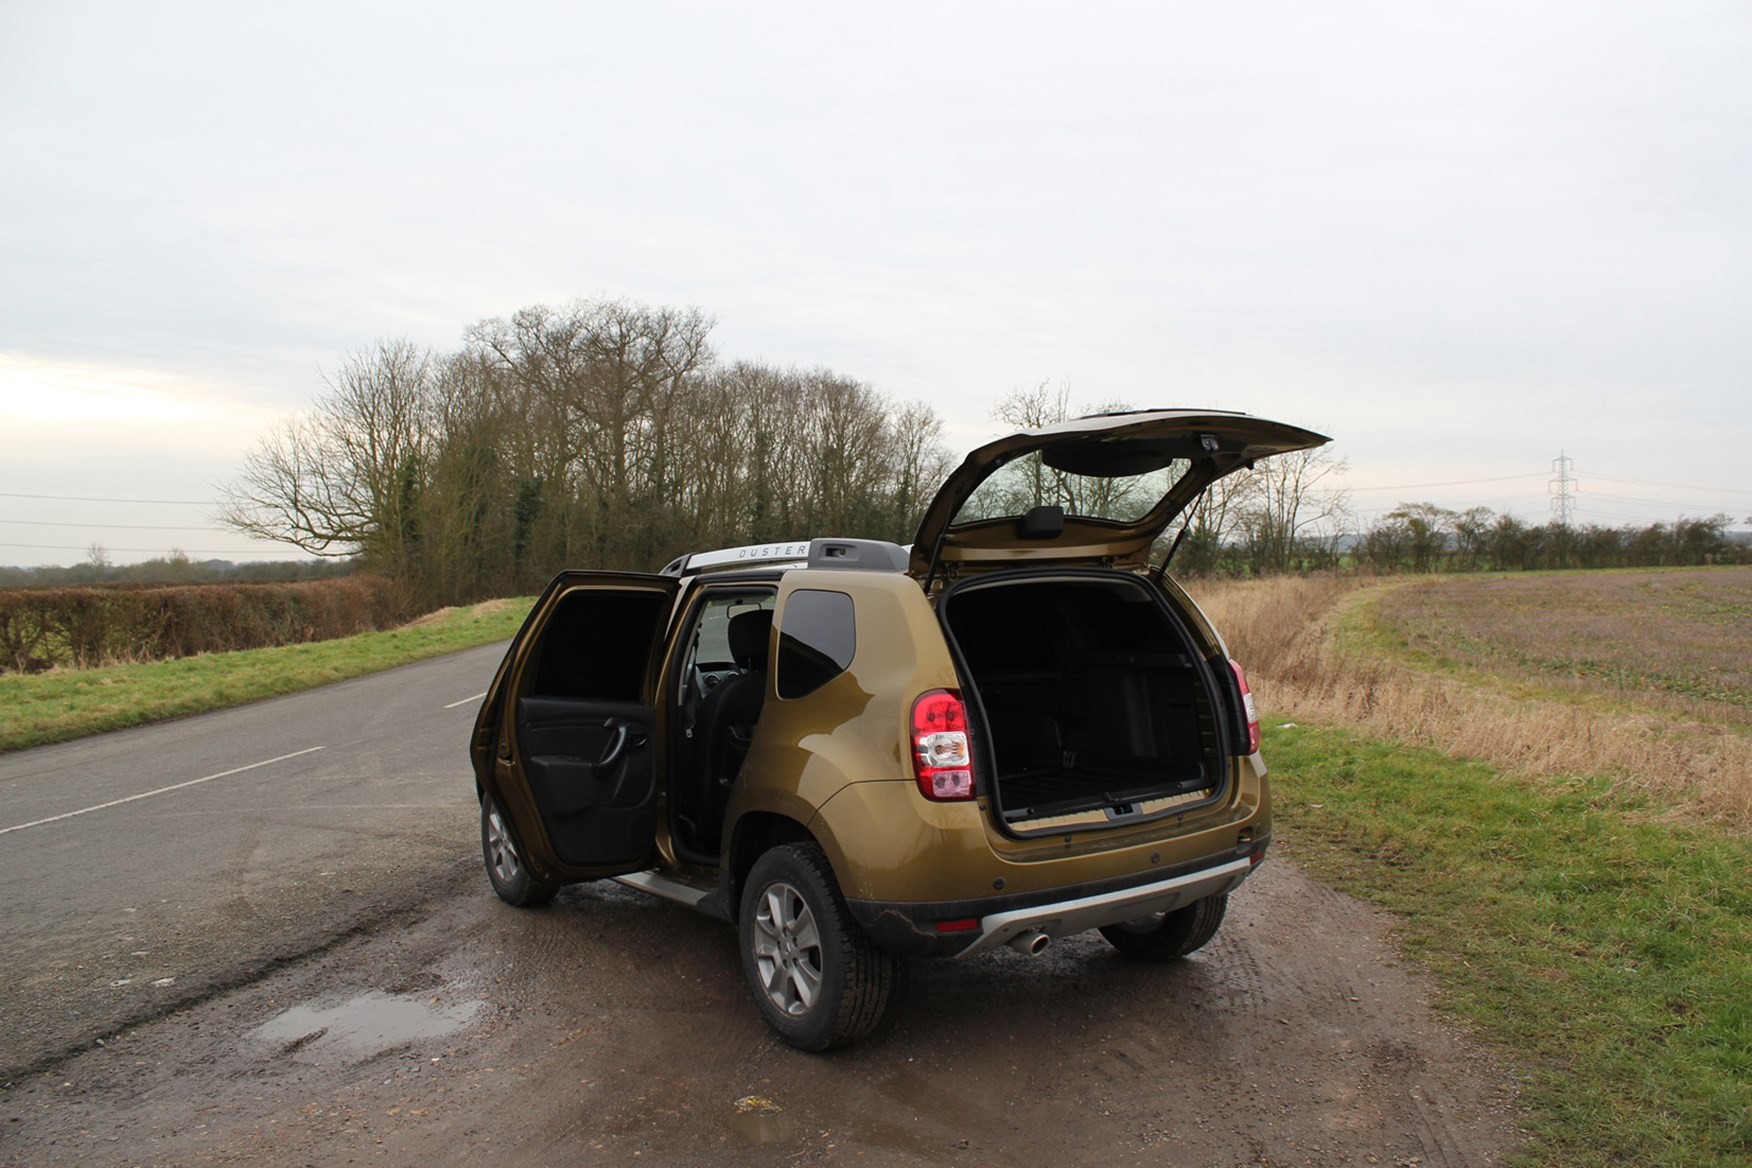 Dacia Duster full review on Parkers Vans - load area